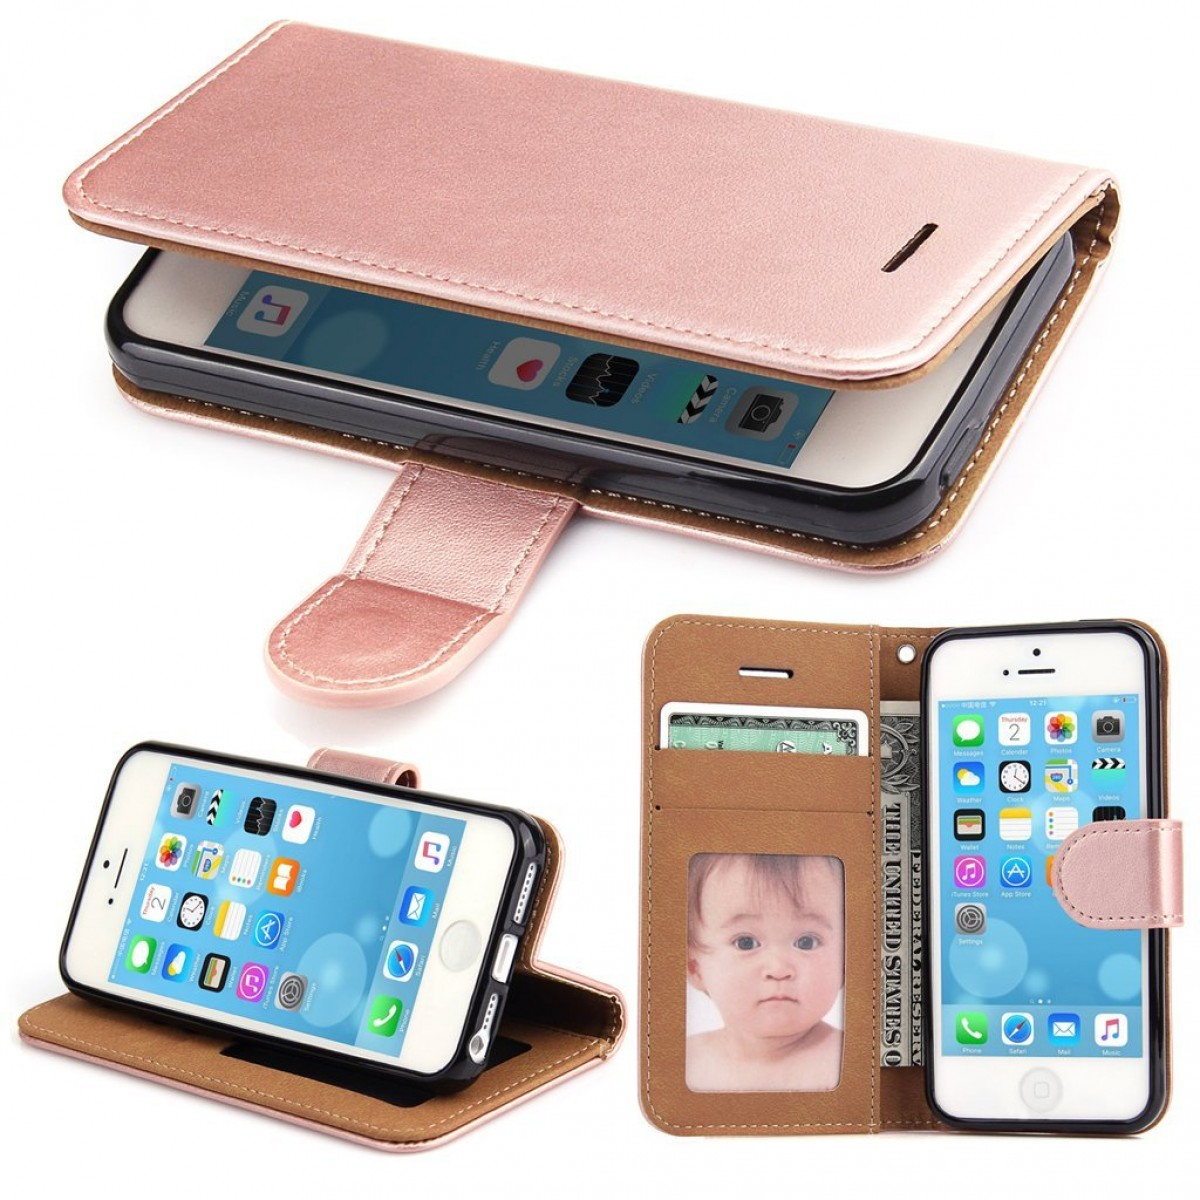 best cheap 03211 65518 iPhone 5S Case, iPhone 5 Case - SOWOKO iPhone SE Leather Wallet Case Slim  Flip Case, Shockproof Protective Phone Cover for Apple iPhone 5S/5/SE (Rose  ...